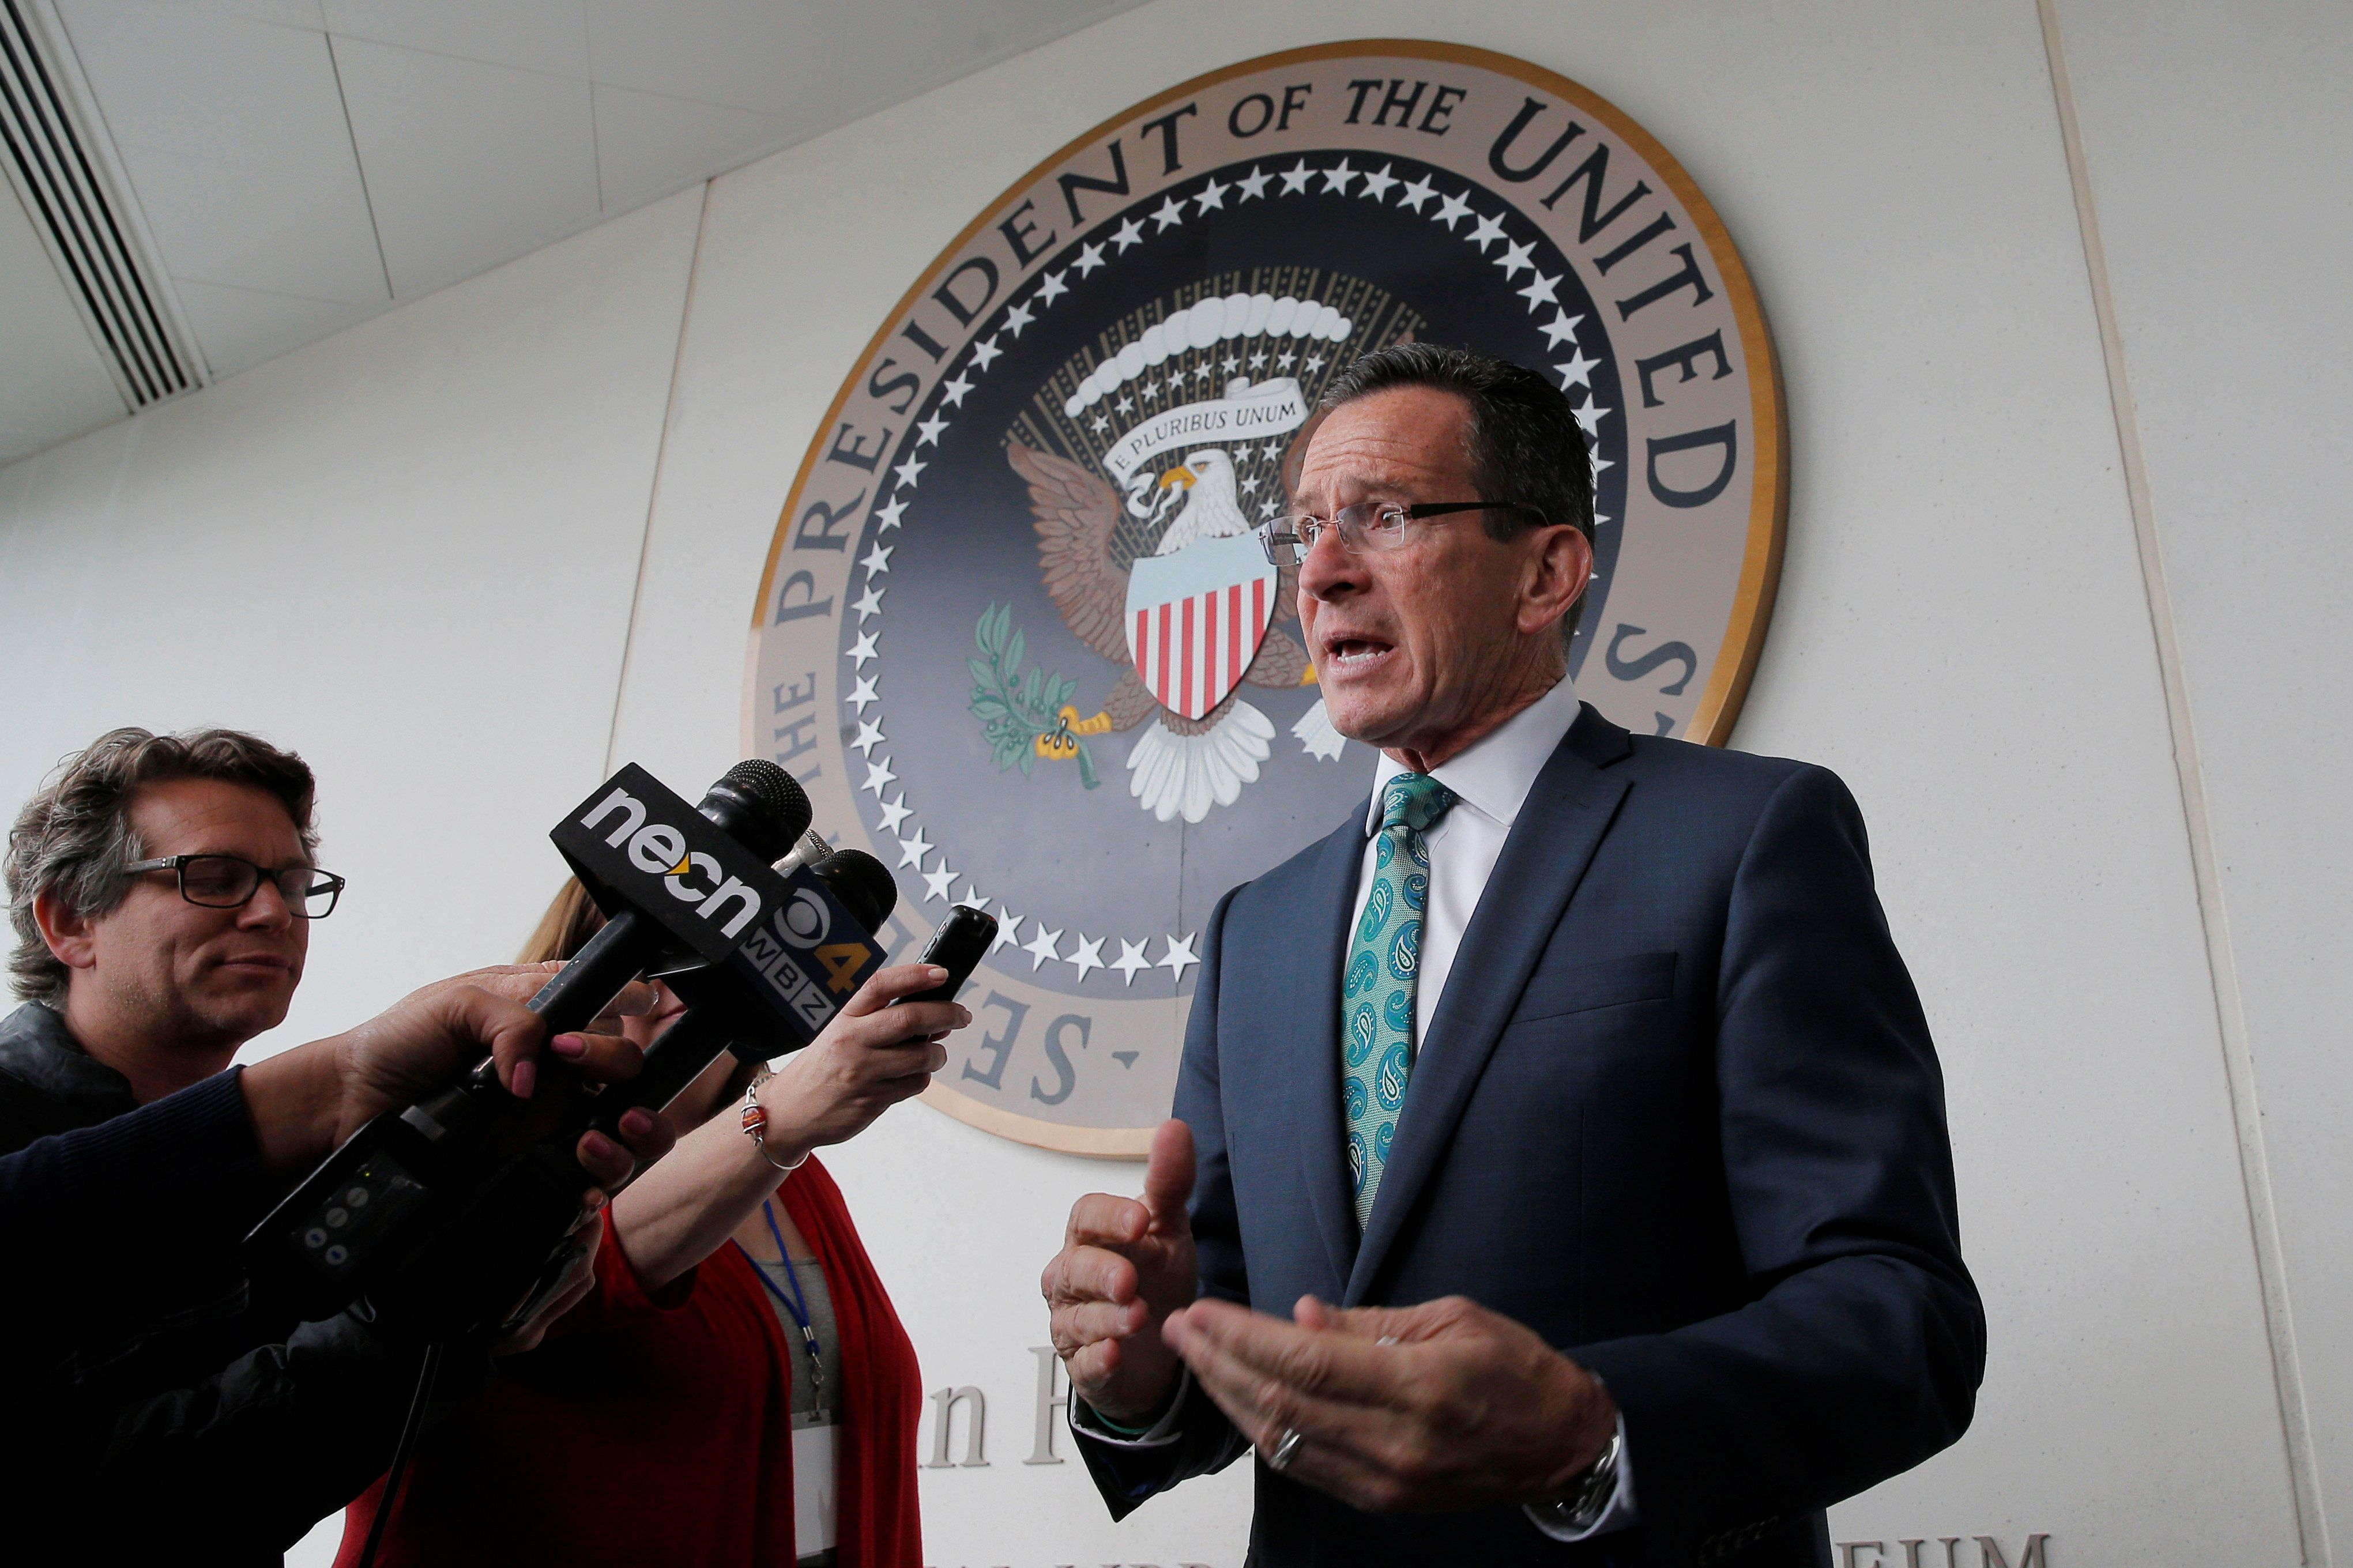 Connecticut Governor Dannel Malloy speaks to reporters after accepting the 2016 Profile in Courage Award at the John F. Kennedy Library in Boston, Massachusetts May 1, 2016.  REUTERS/Brian Snyder